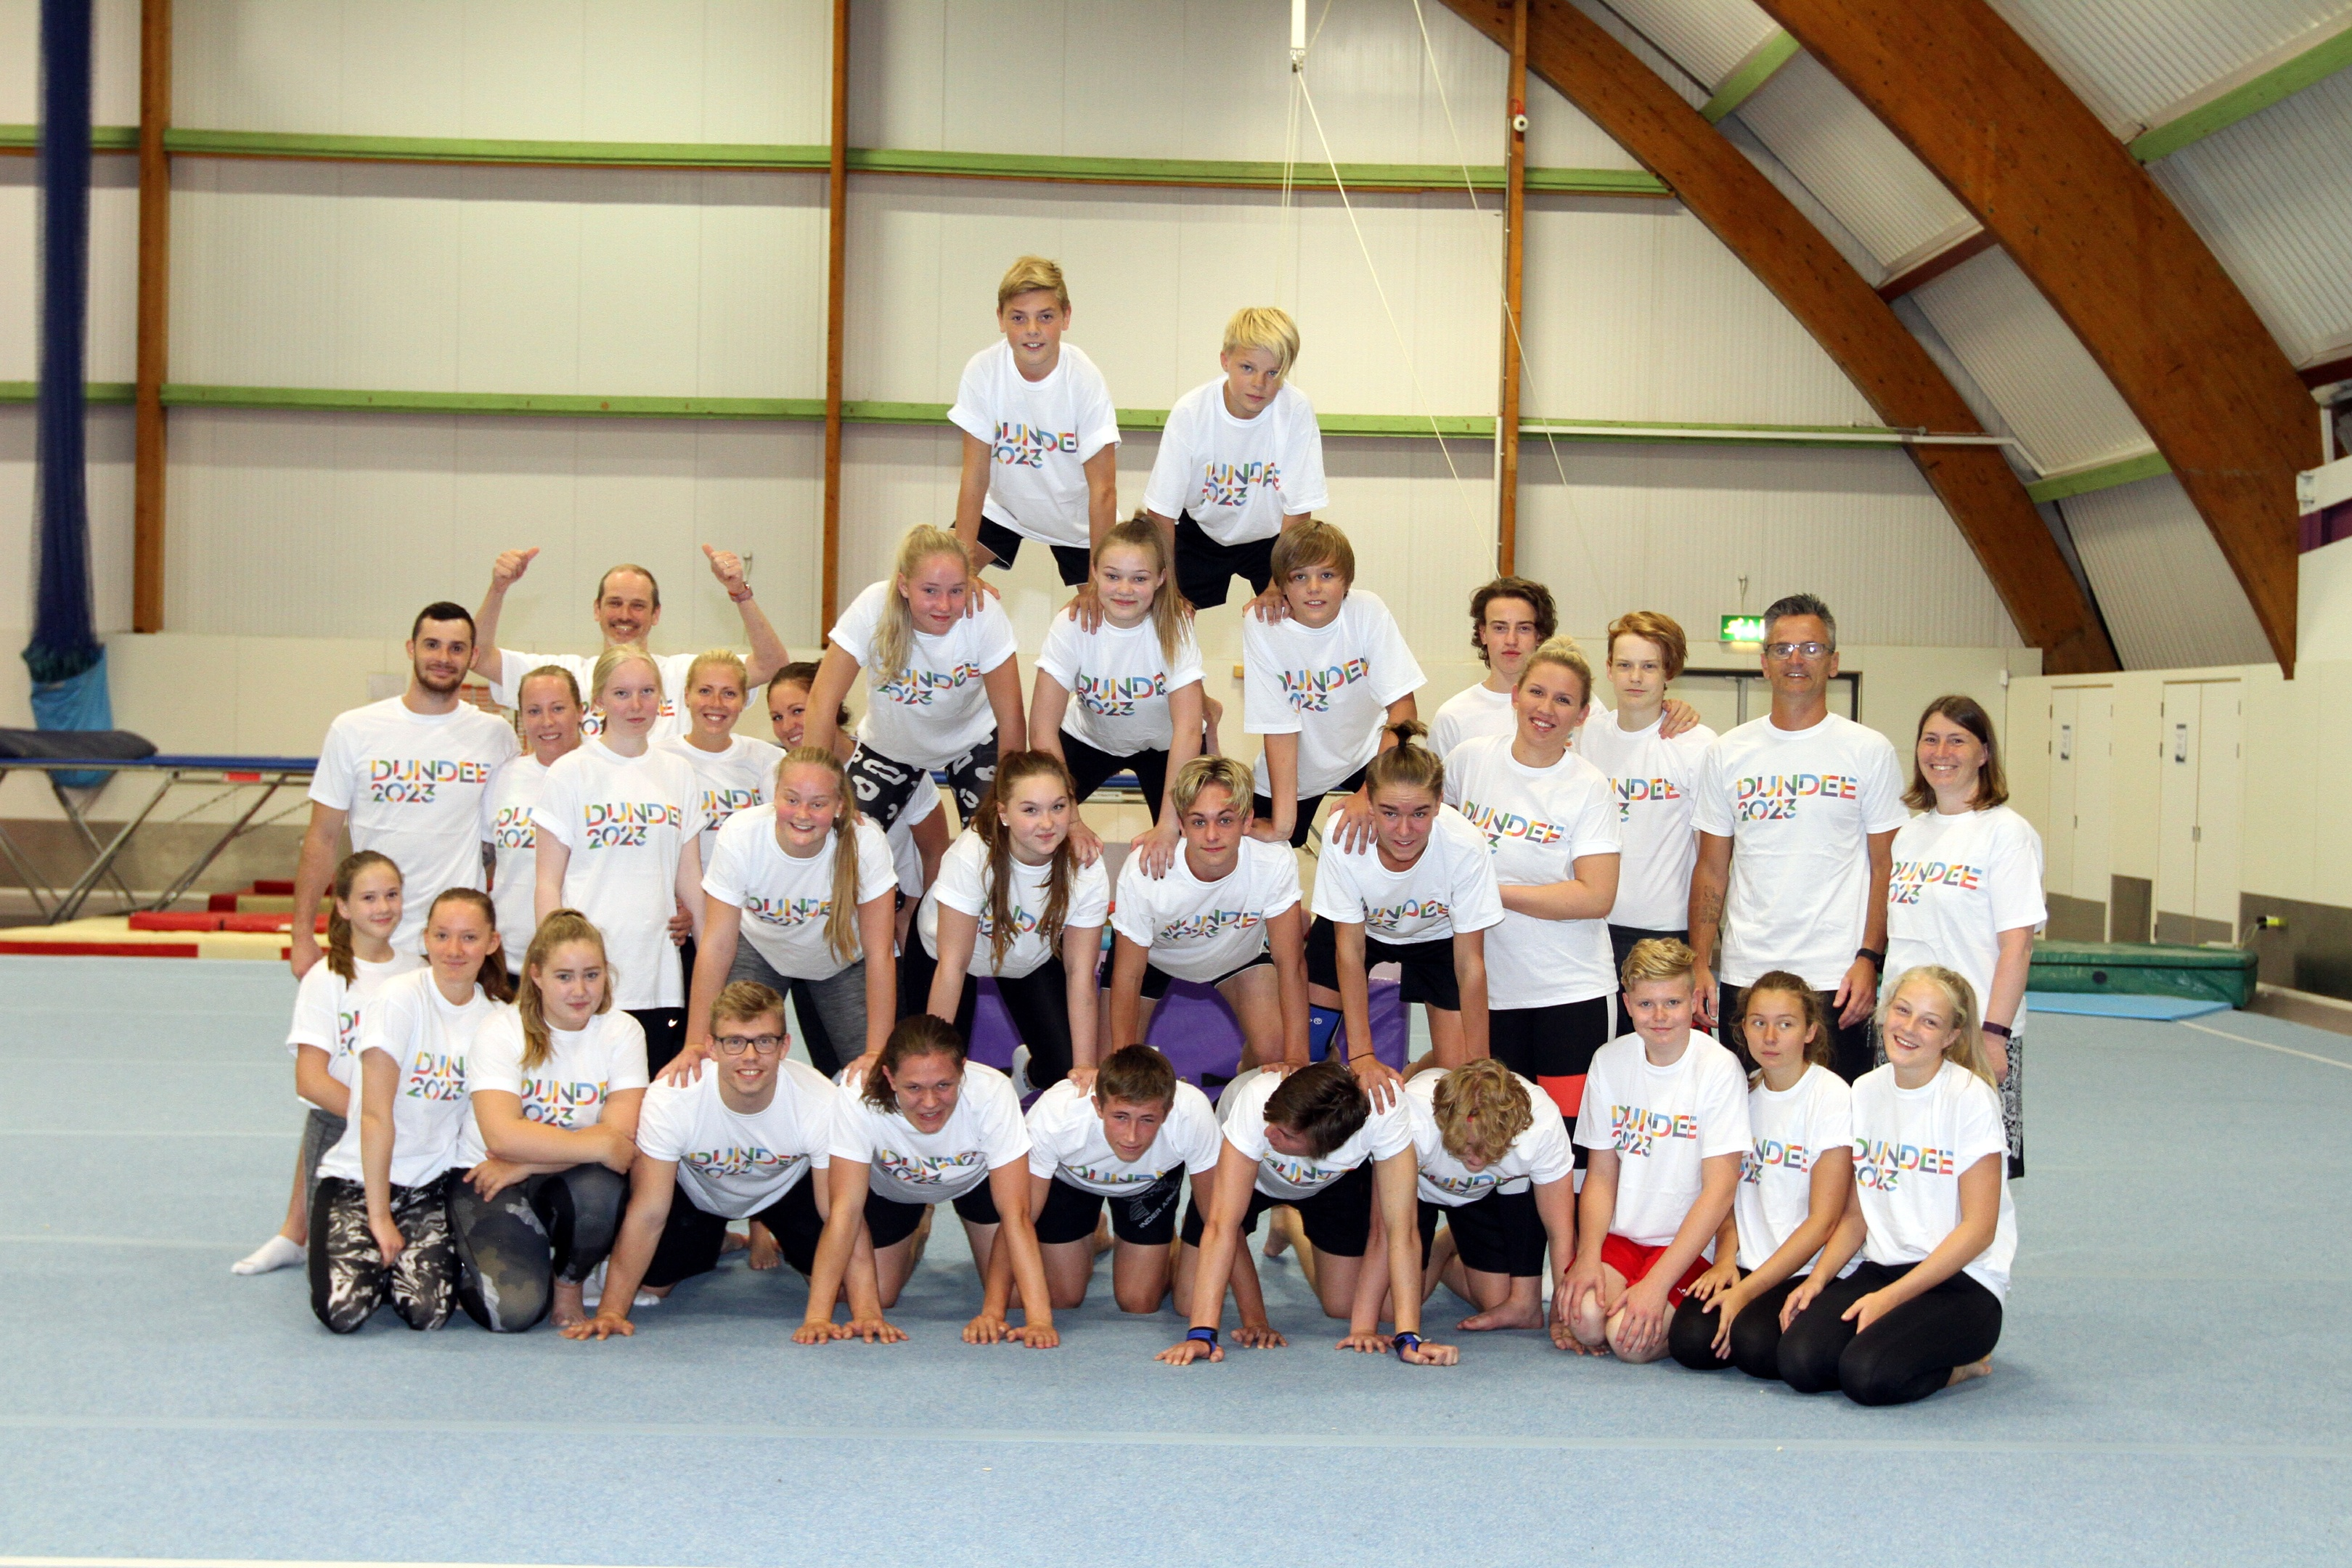 The gymnasts were gifted official Dundee 2023  t -shirts